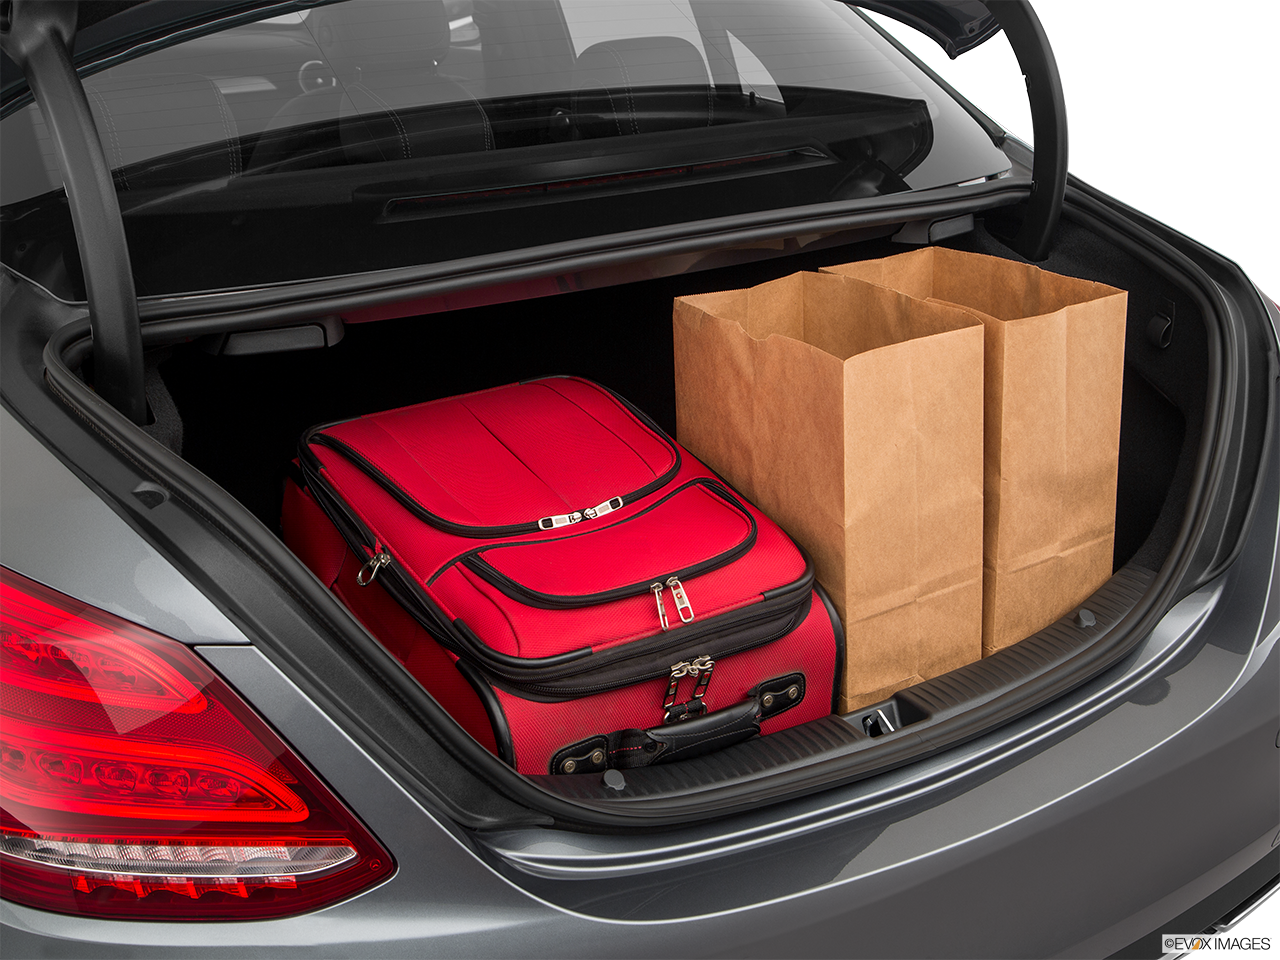 Trunk view of the Mercedes-Benz C350e